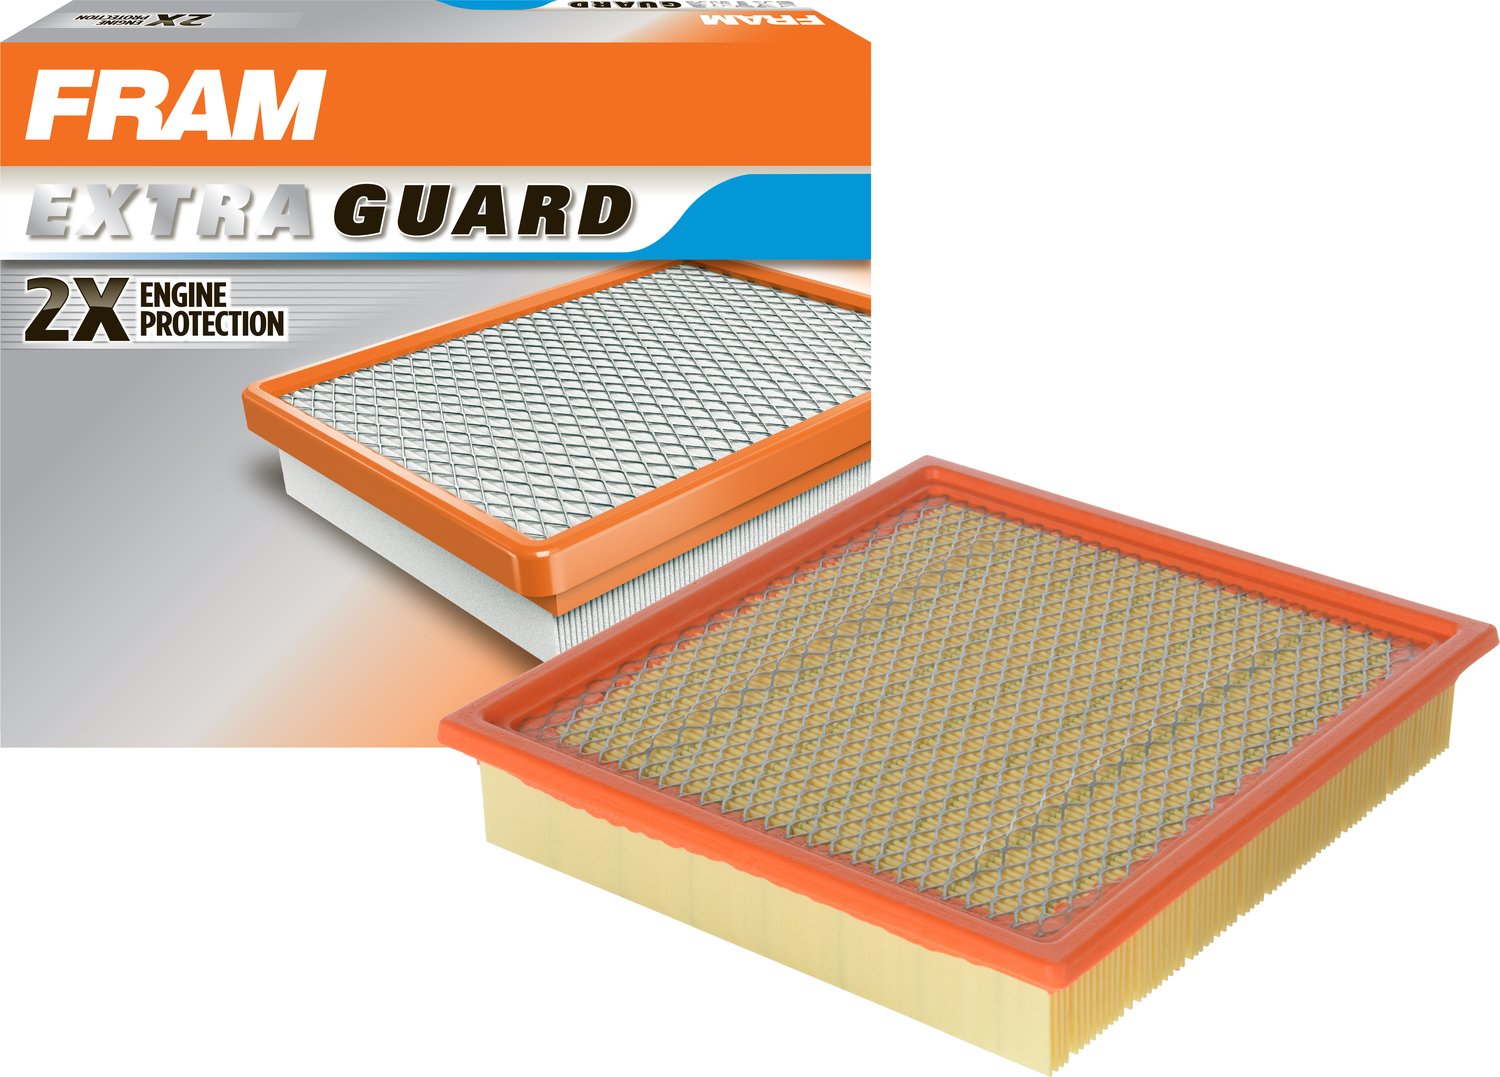 Fram Ca10262 Extra Guard Panel Air Filter Automotive 2003 Ford Expedition Parts Diagram Auto Diagrams